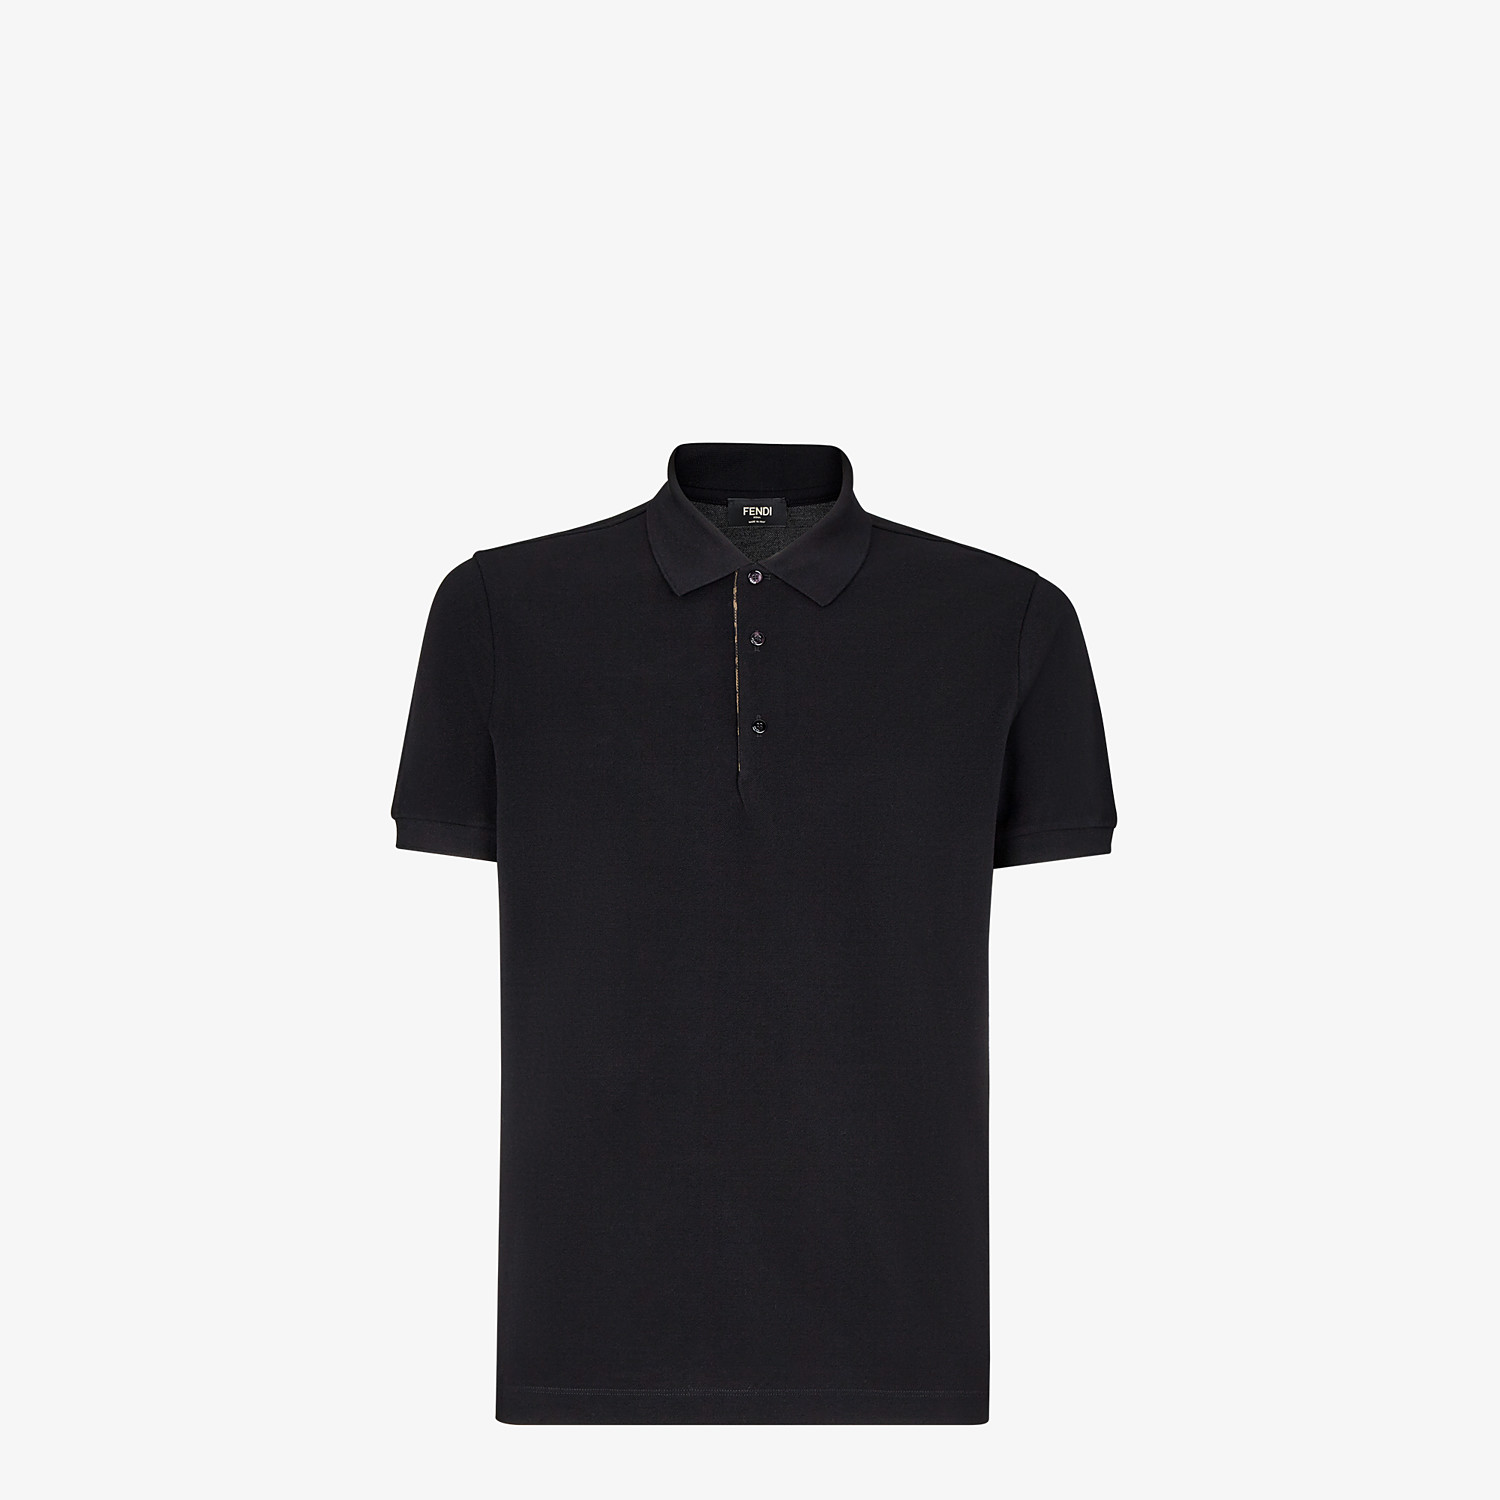 FENDI POLO SHIRT - Black piqué polo shirt - view 1 detail